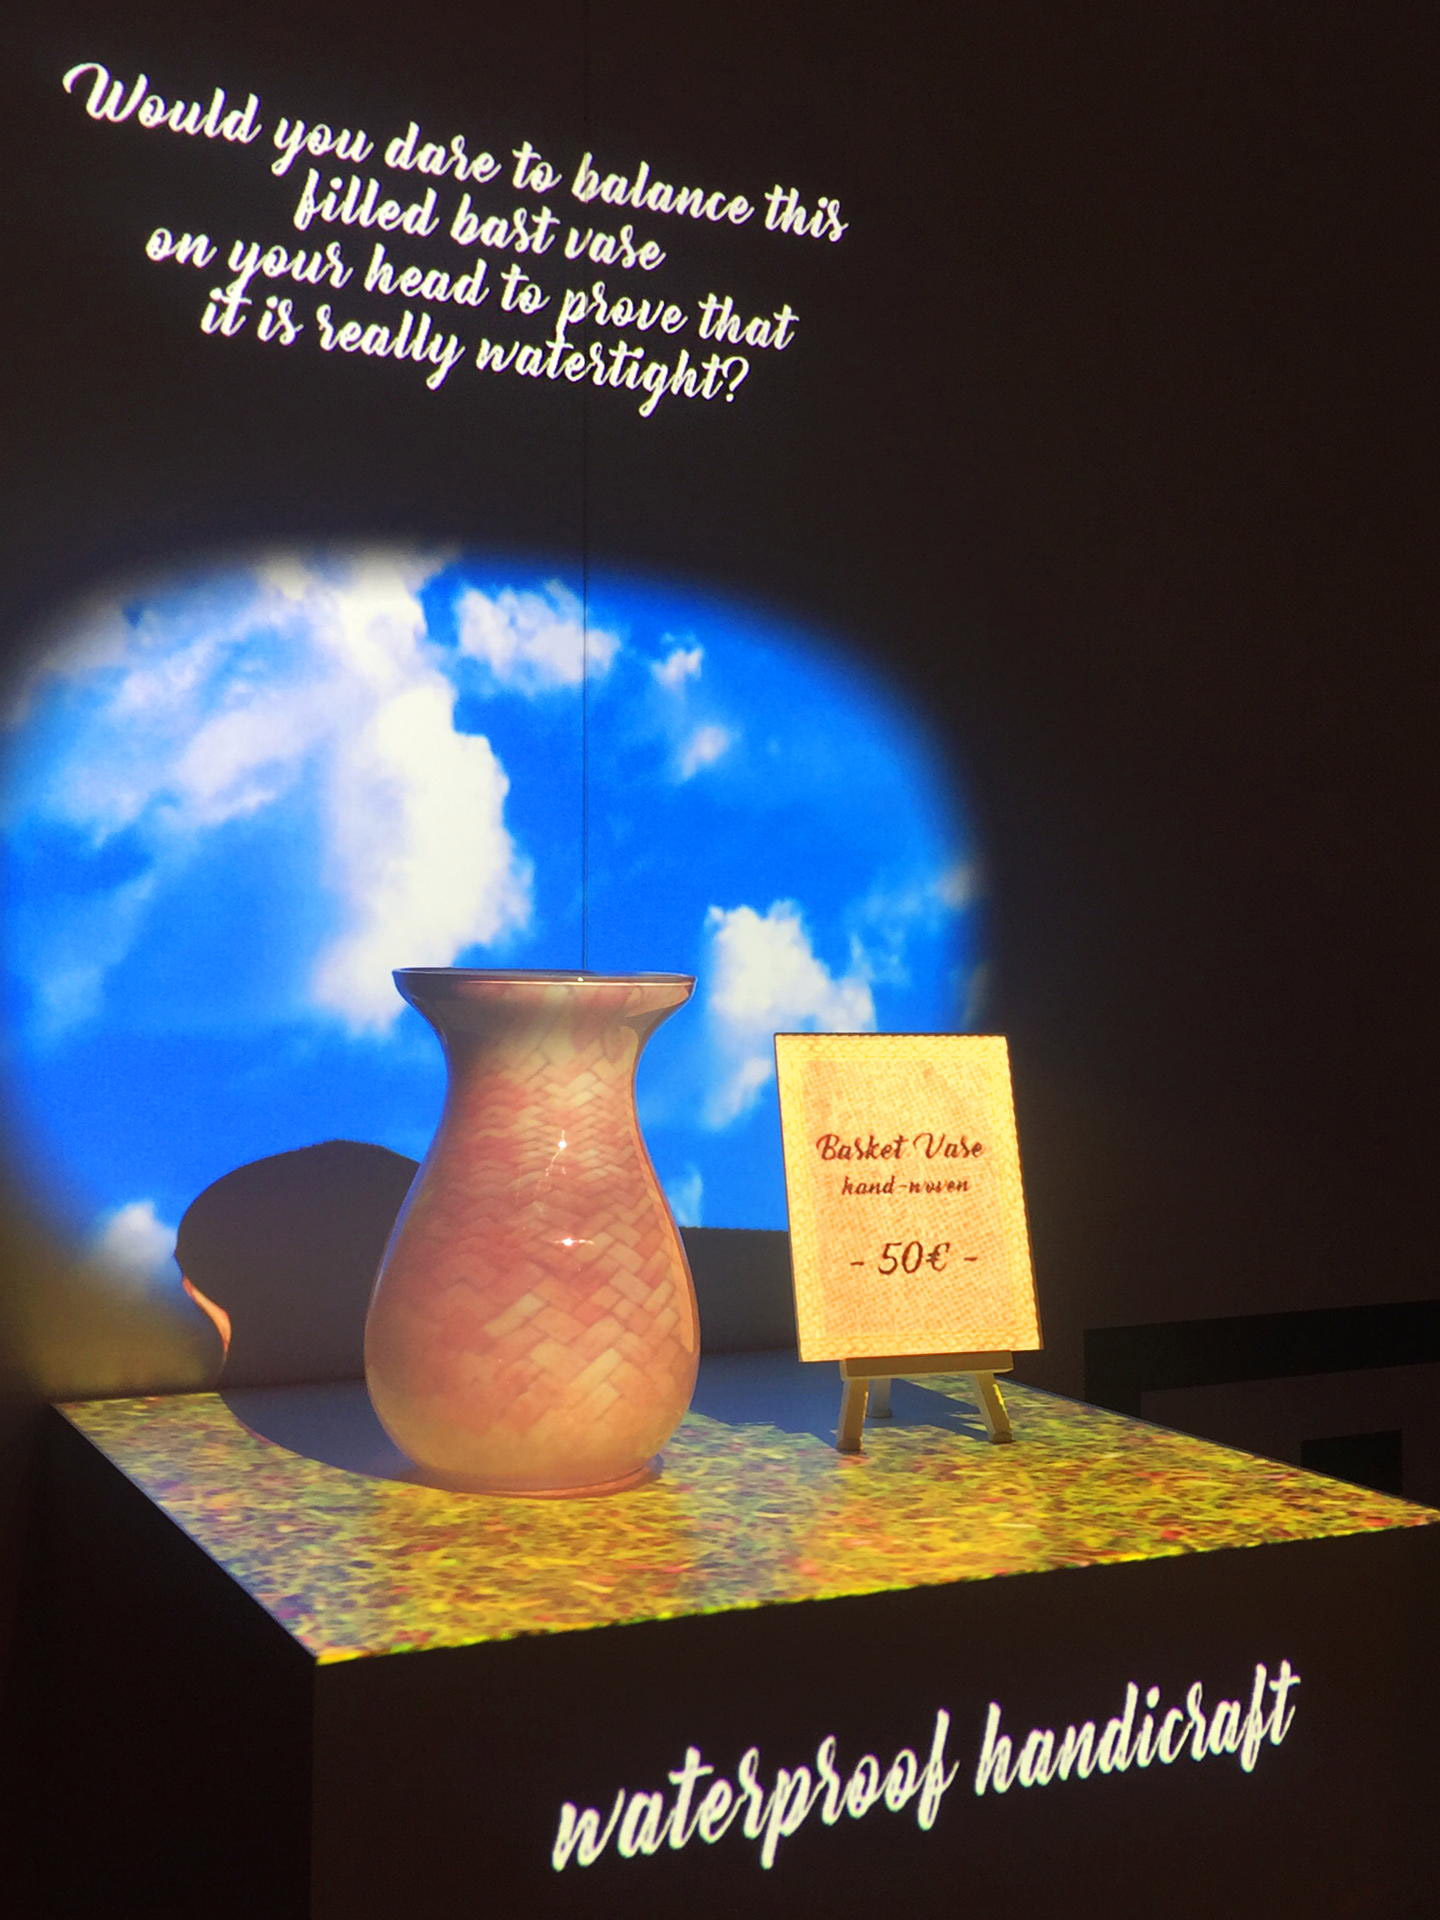 Sneaker_Vase_Projection_pong_li_4